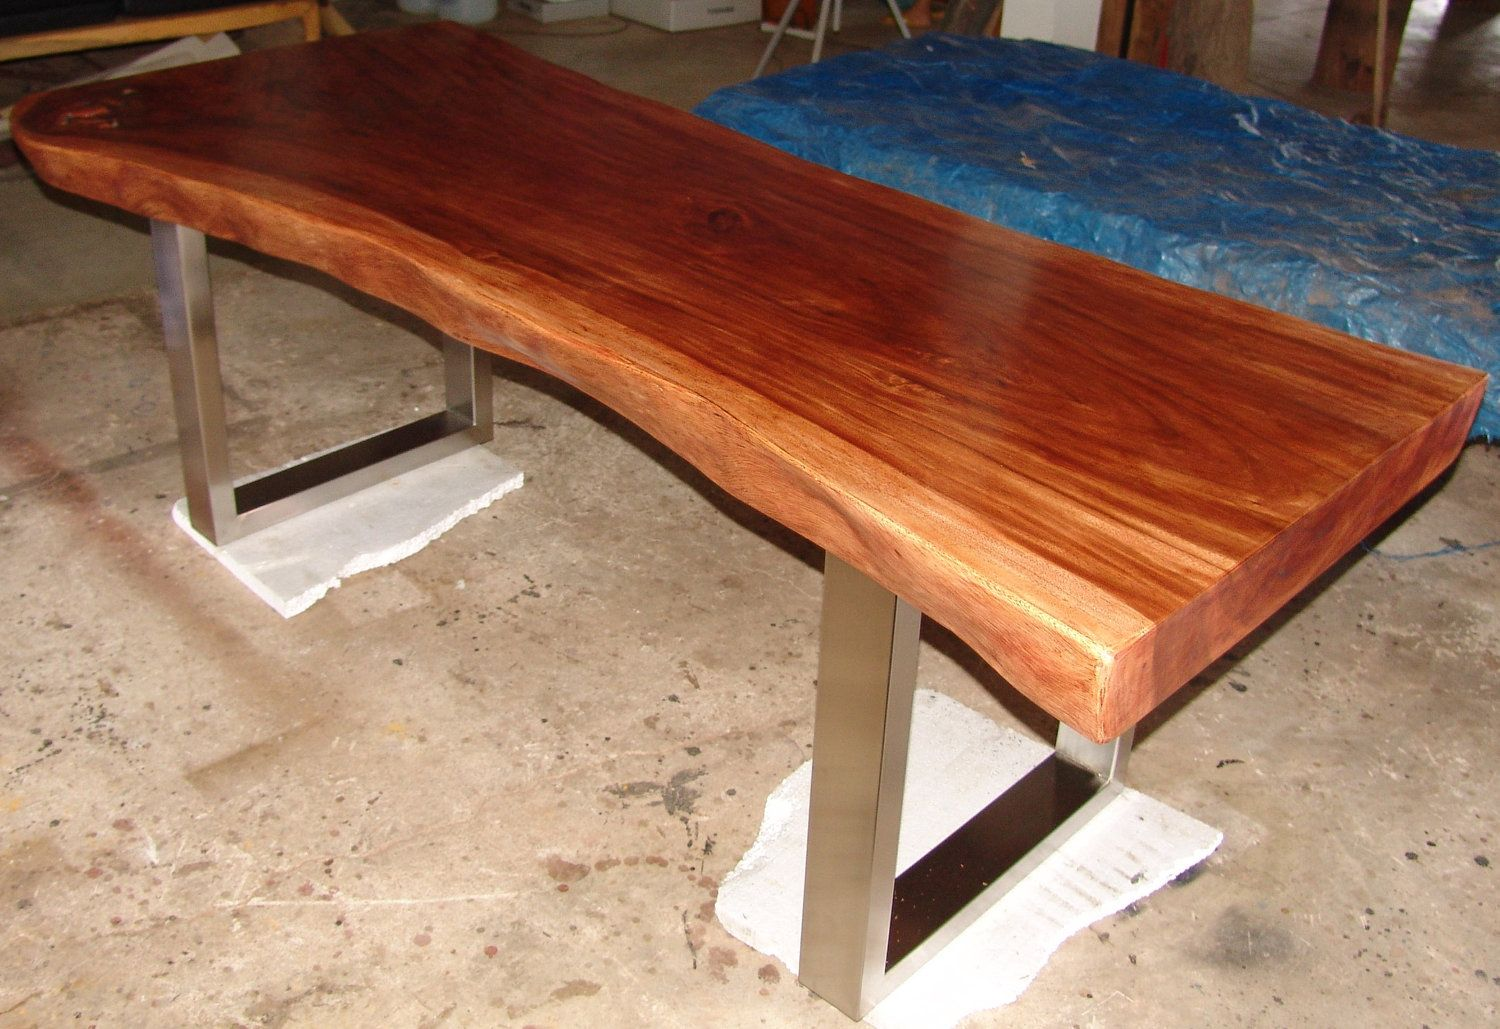 Perfect Live Edge Dining Table Reclaimed Solid Slab Acacia Wood By Flowbkk On Etsy